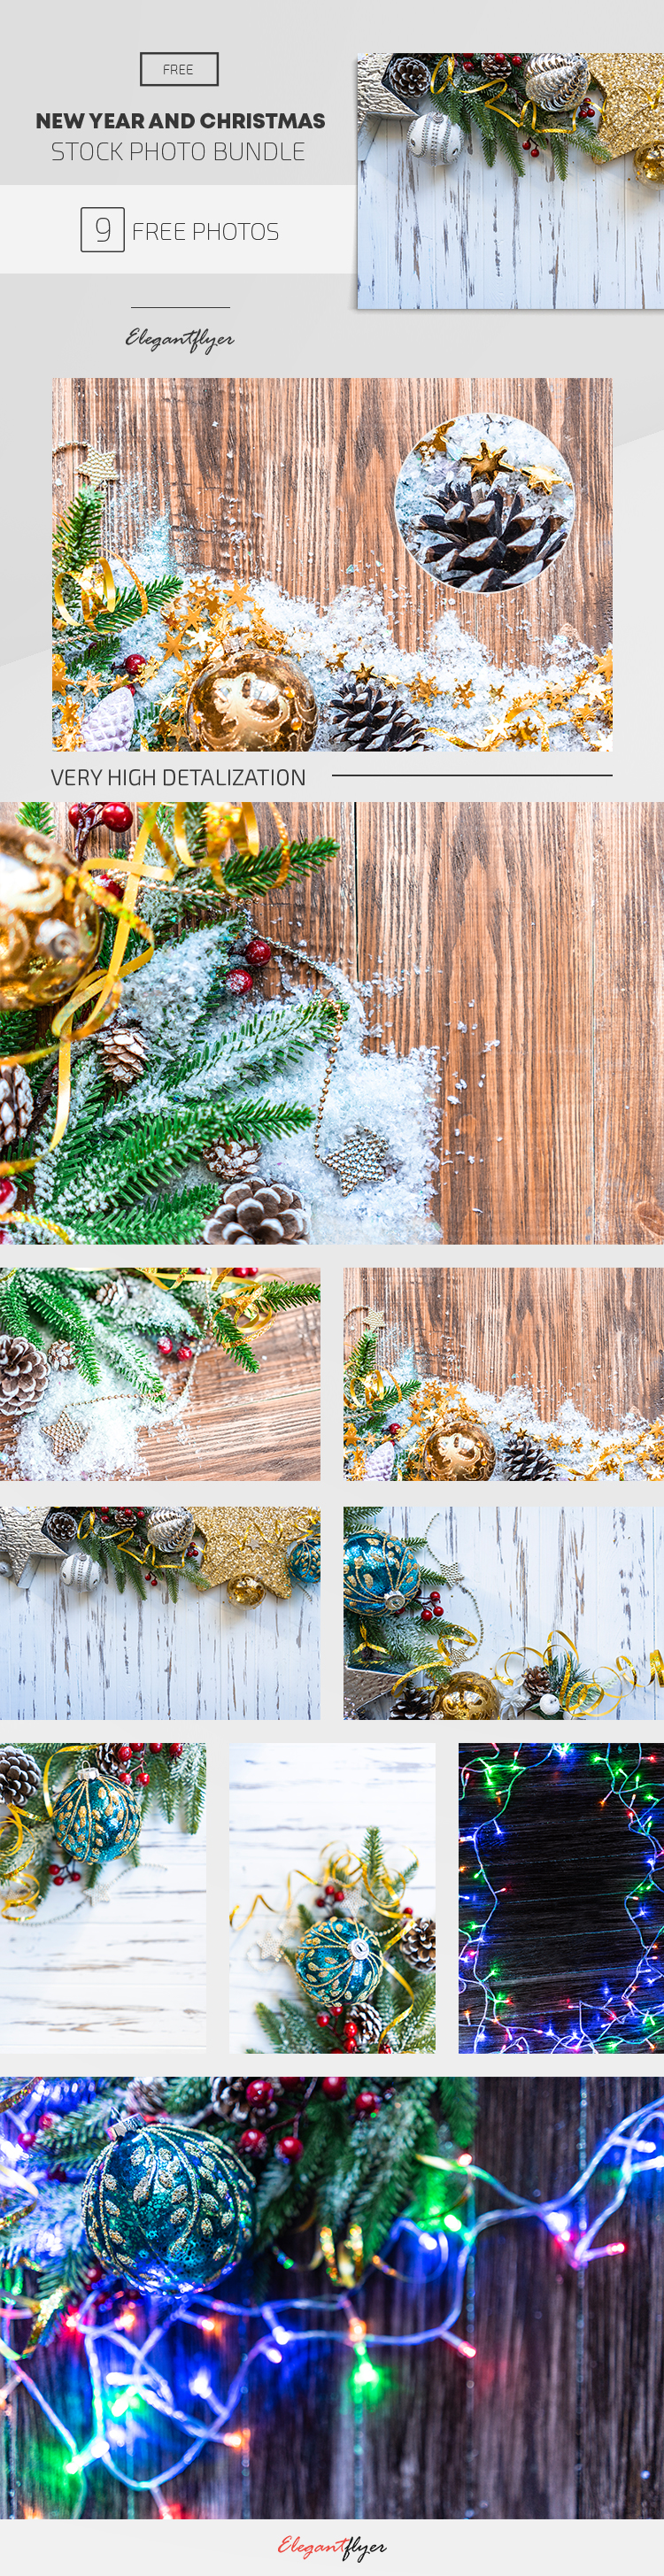 New Year and Christmas – 9 Free Stock Photos Bundle